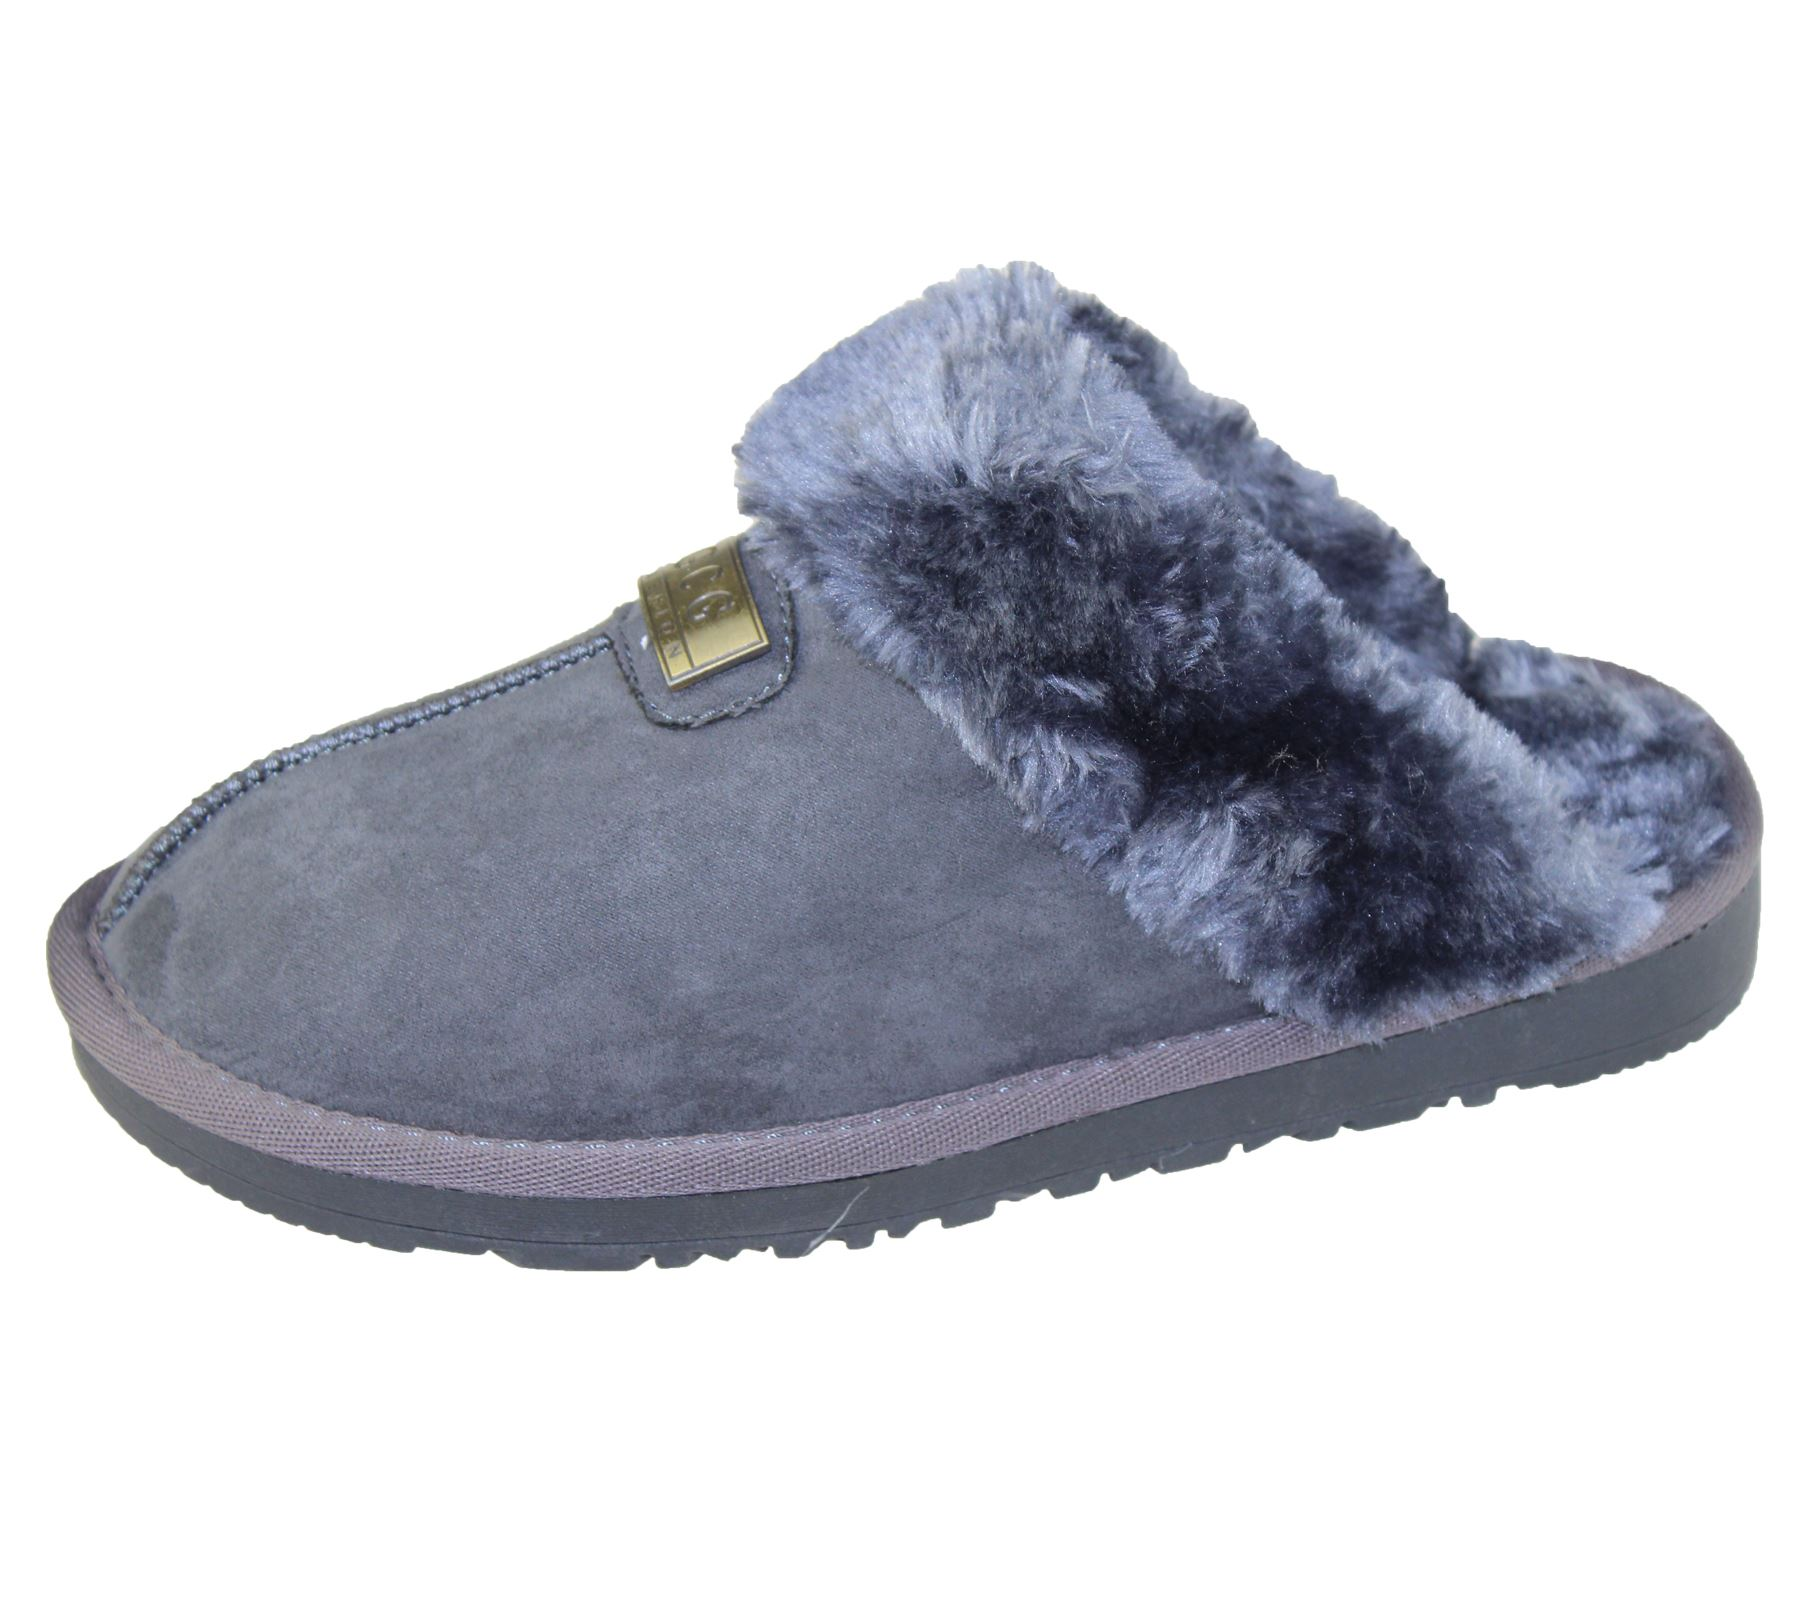 Womens-Fur-Lined-Slippers-Ladies-Mules-Non-Slip-Rubber-Sole-Shoes miniatura 35